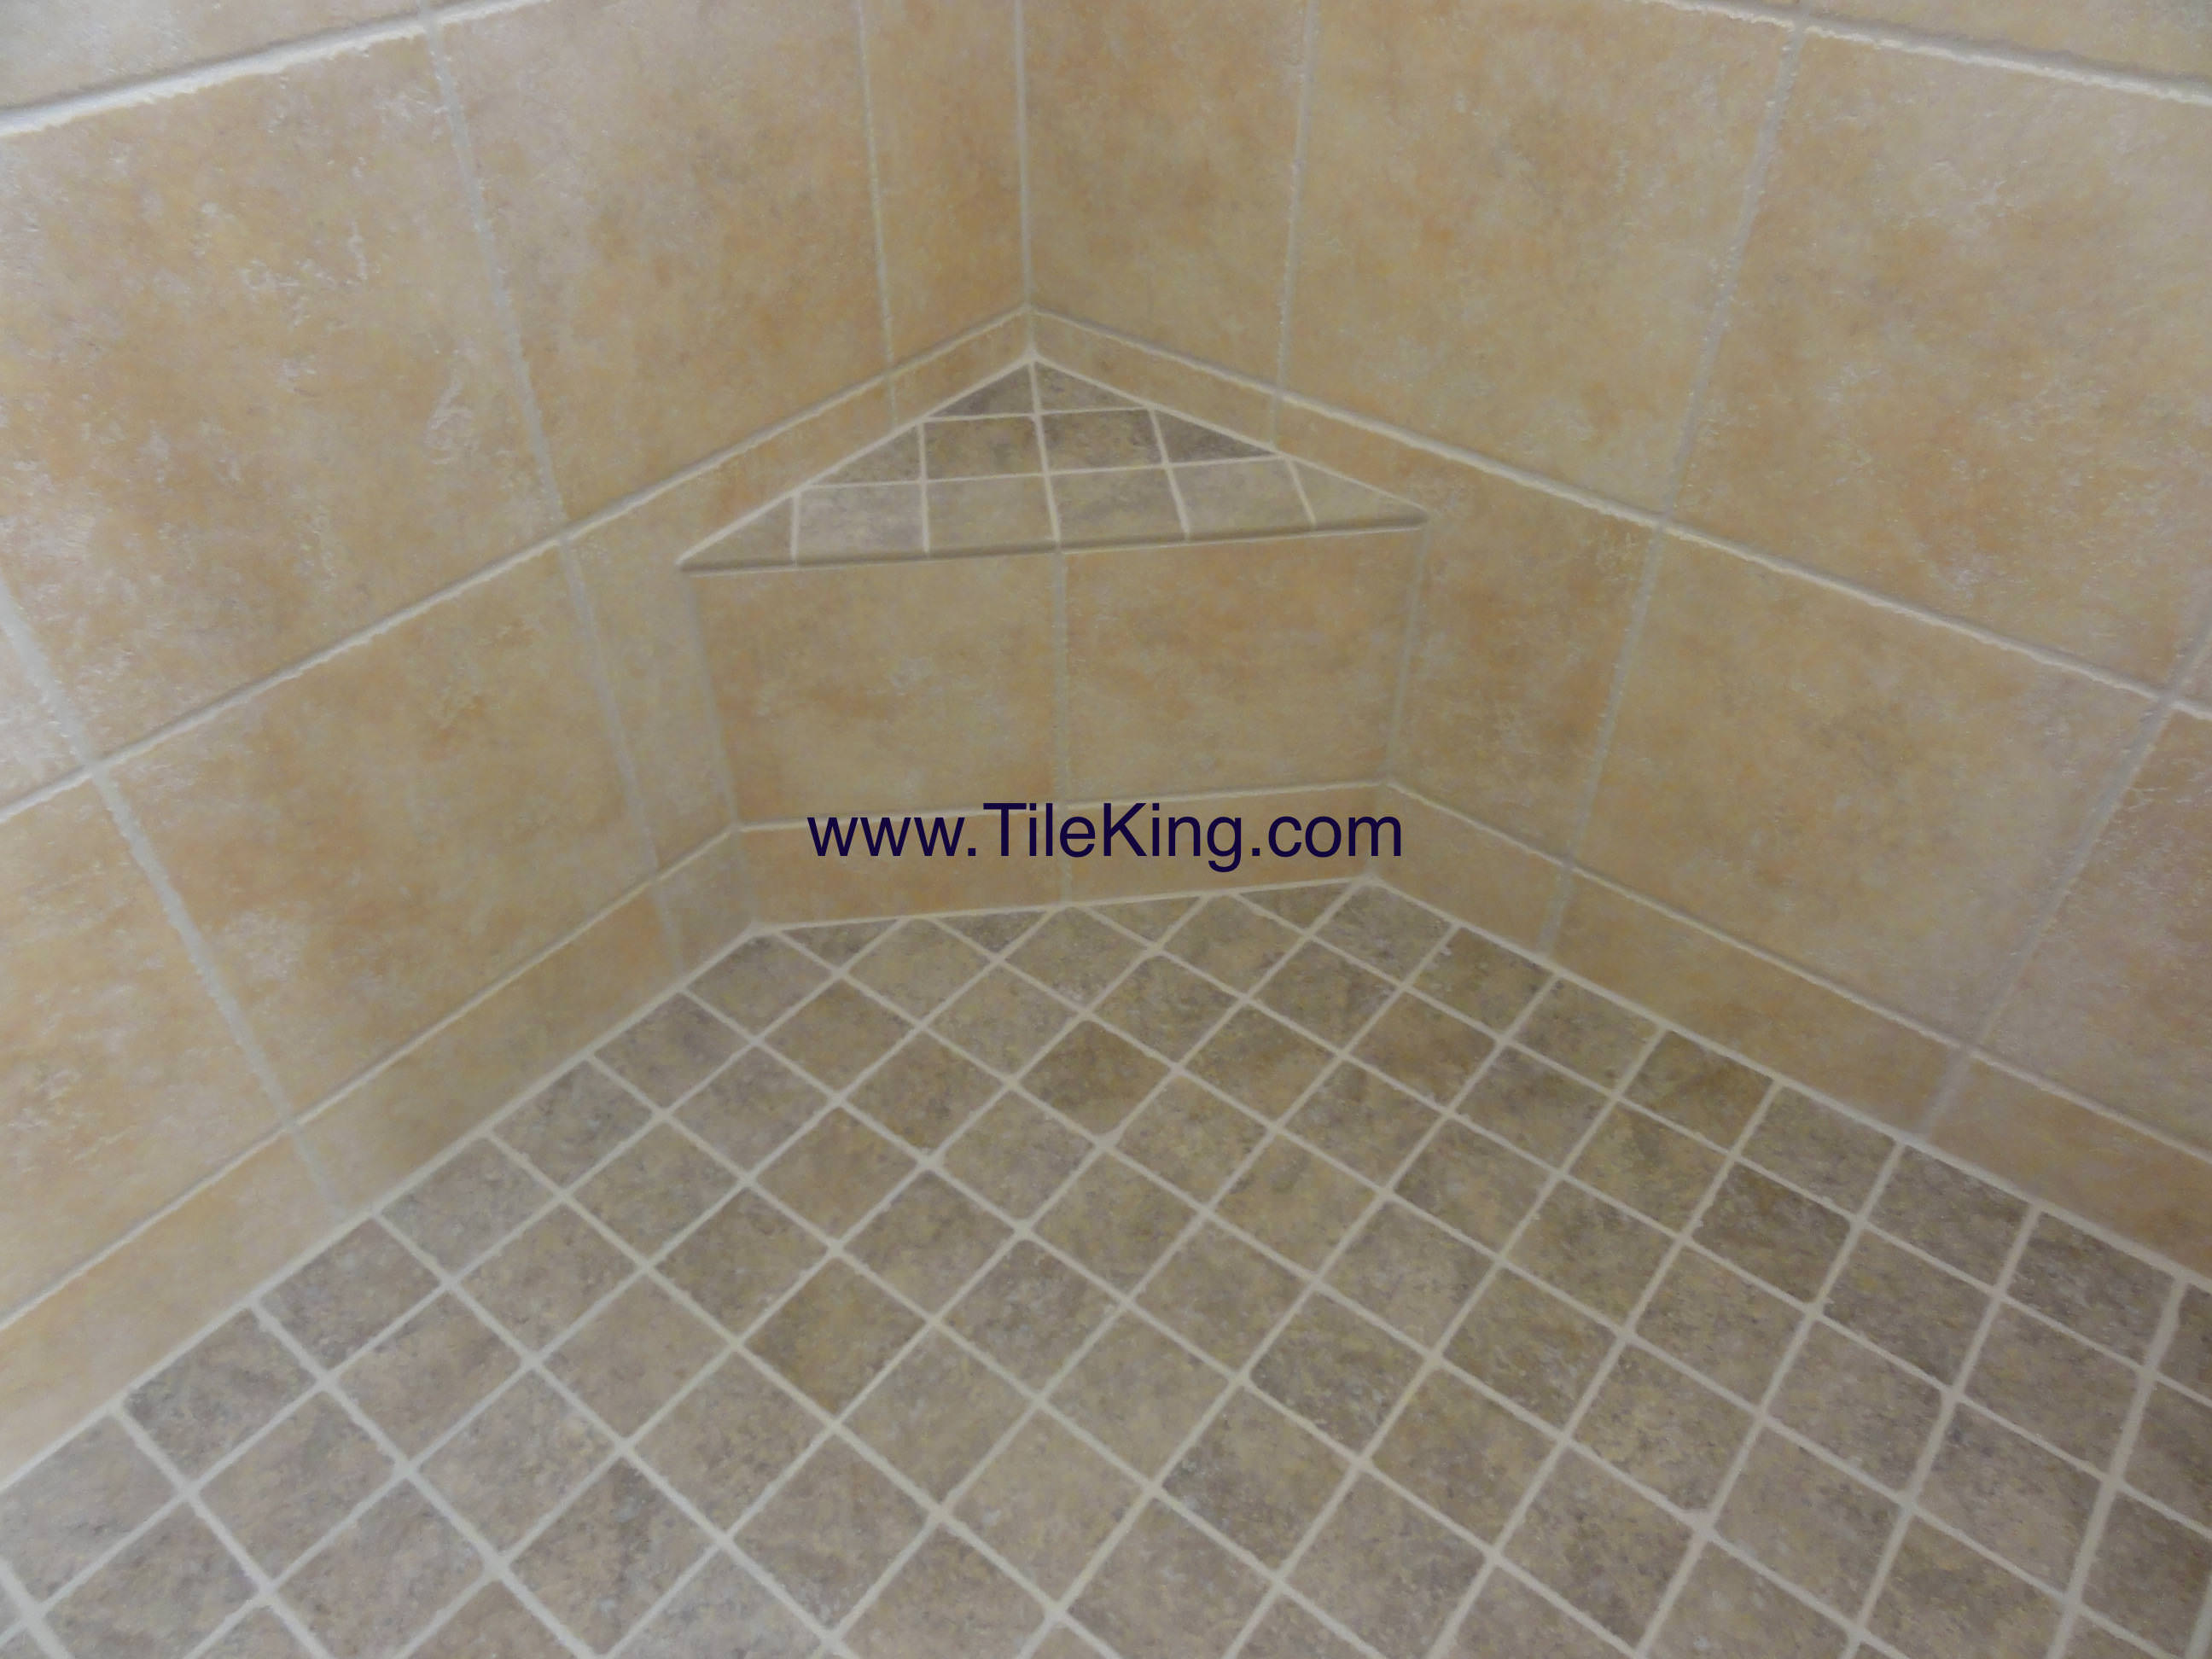 Travertine Shower After Cleaning & Sealing